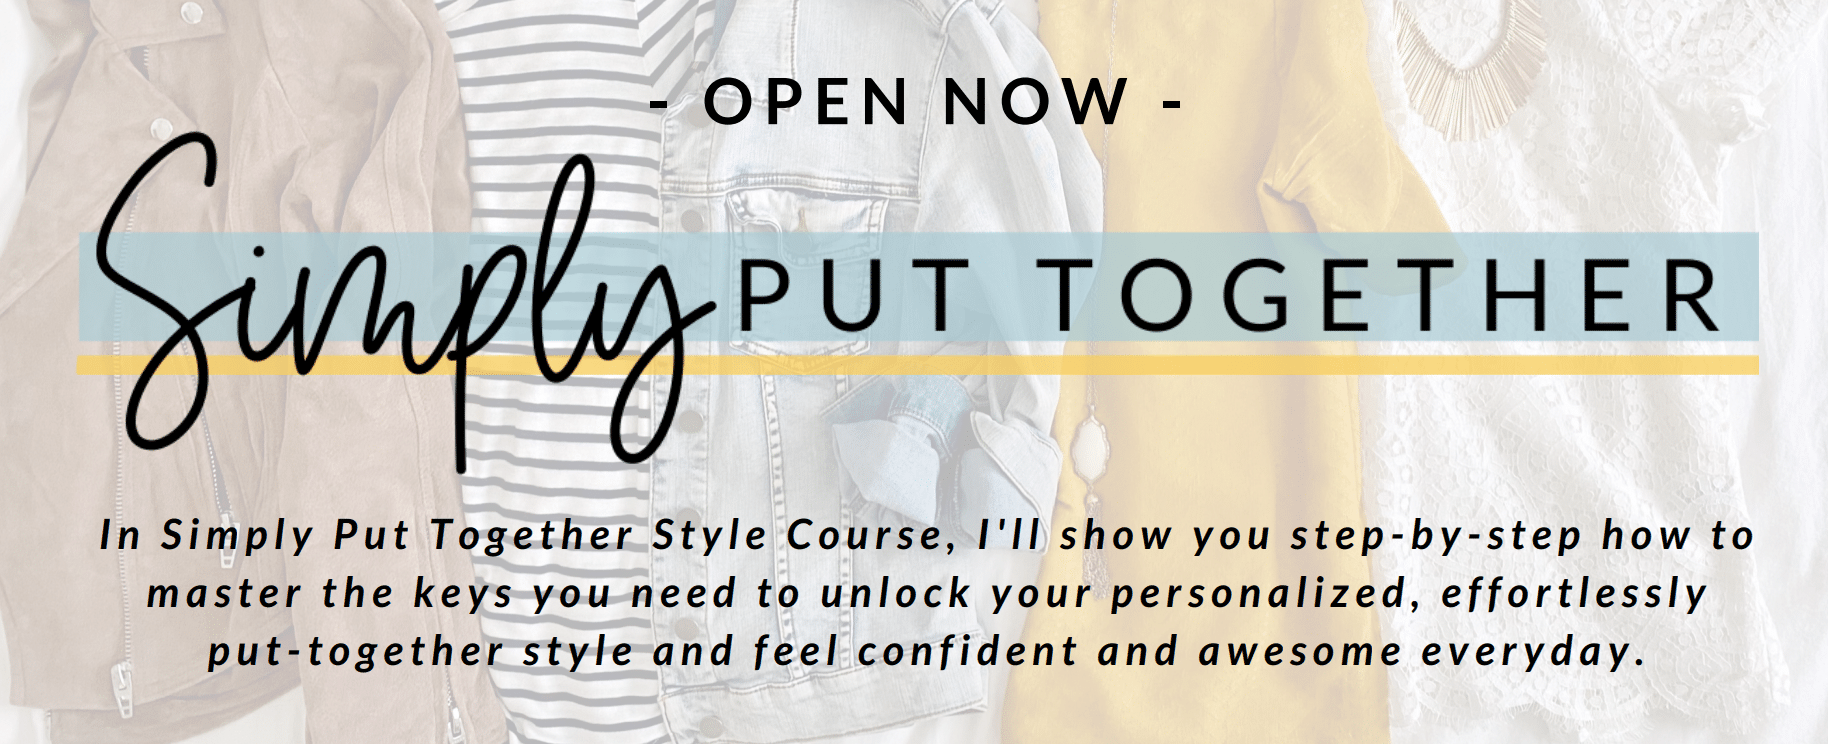 Simply Put Together Style Course Now Open